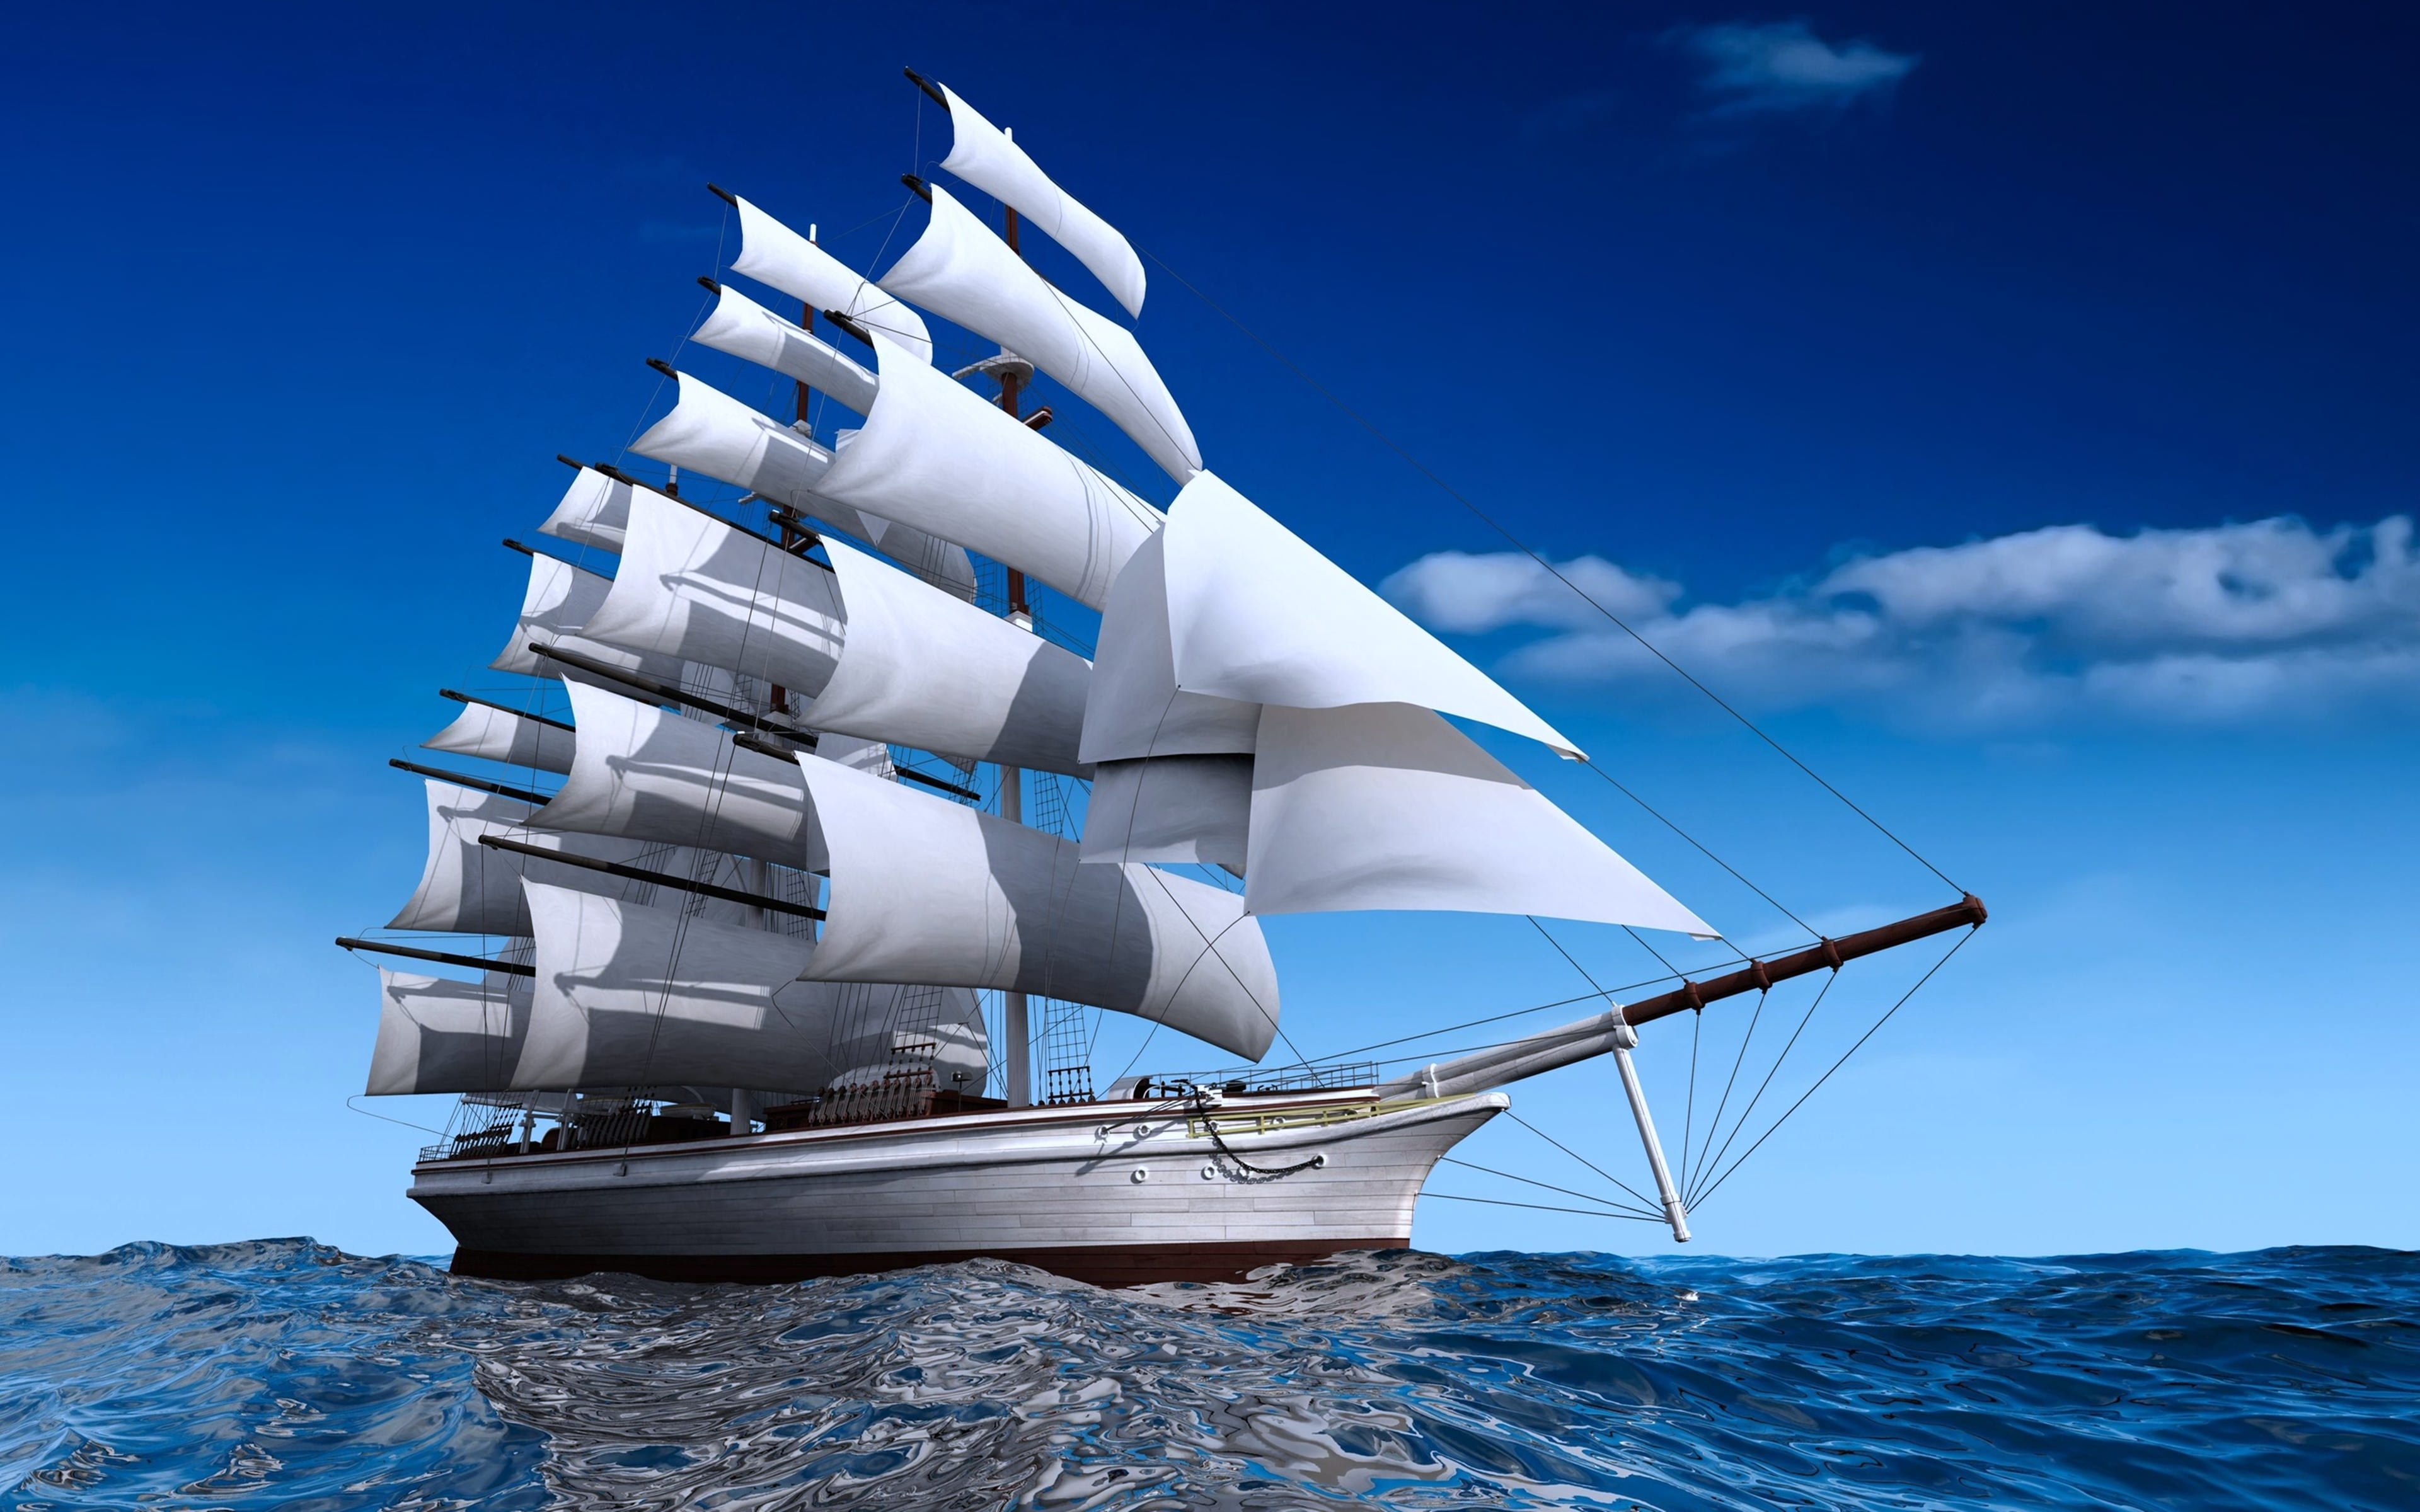 Excellent Sailing Wallpaper